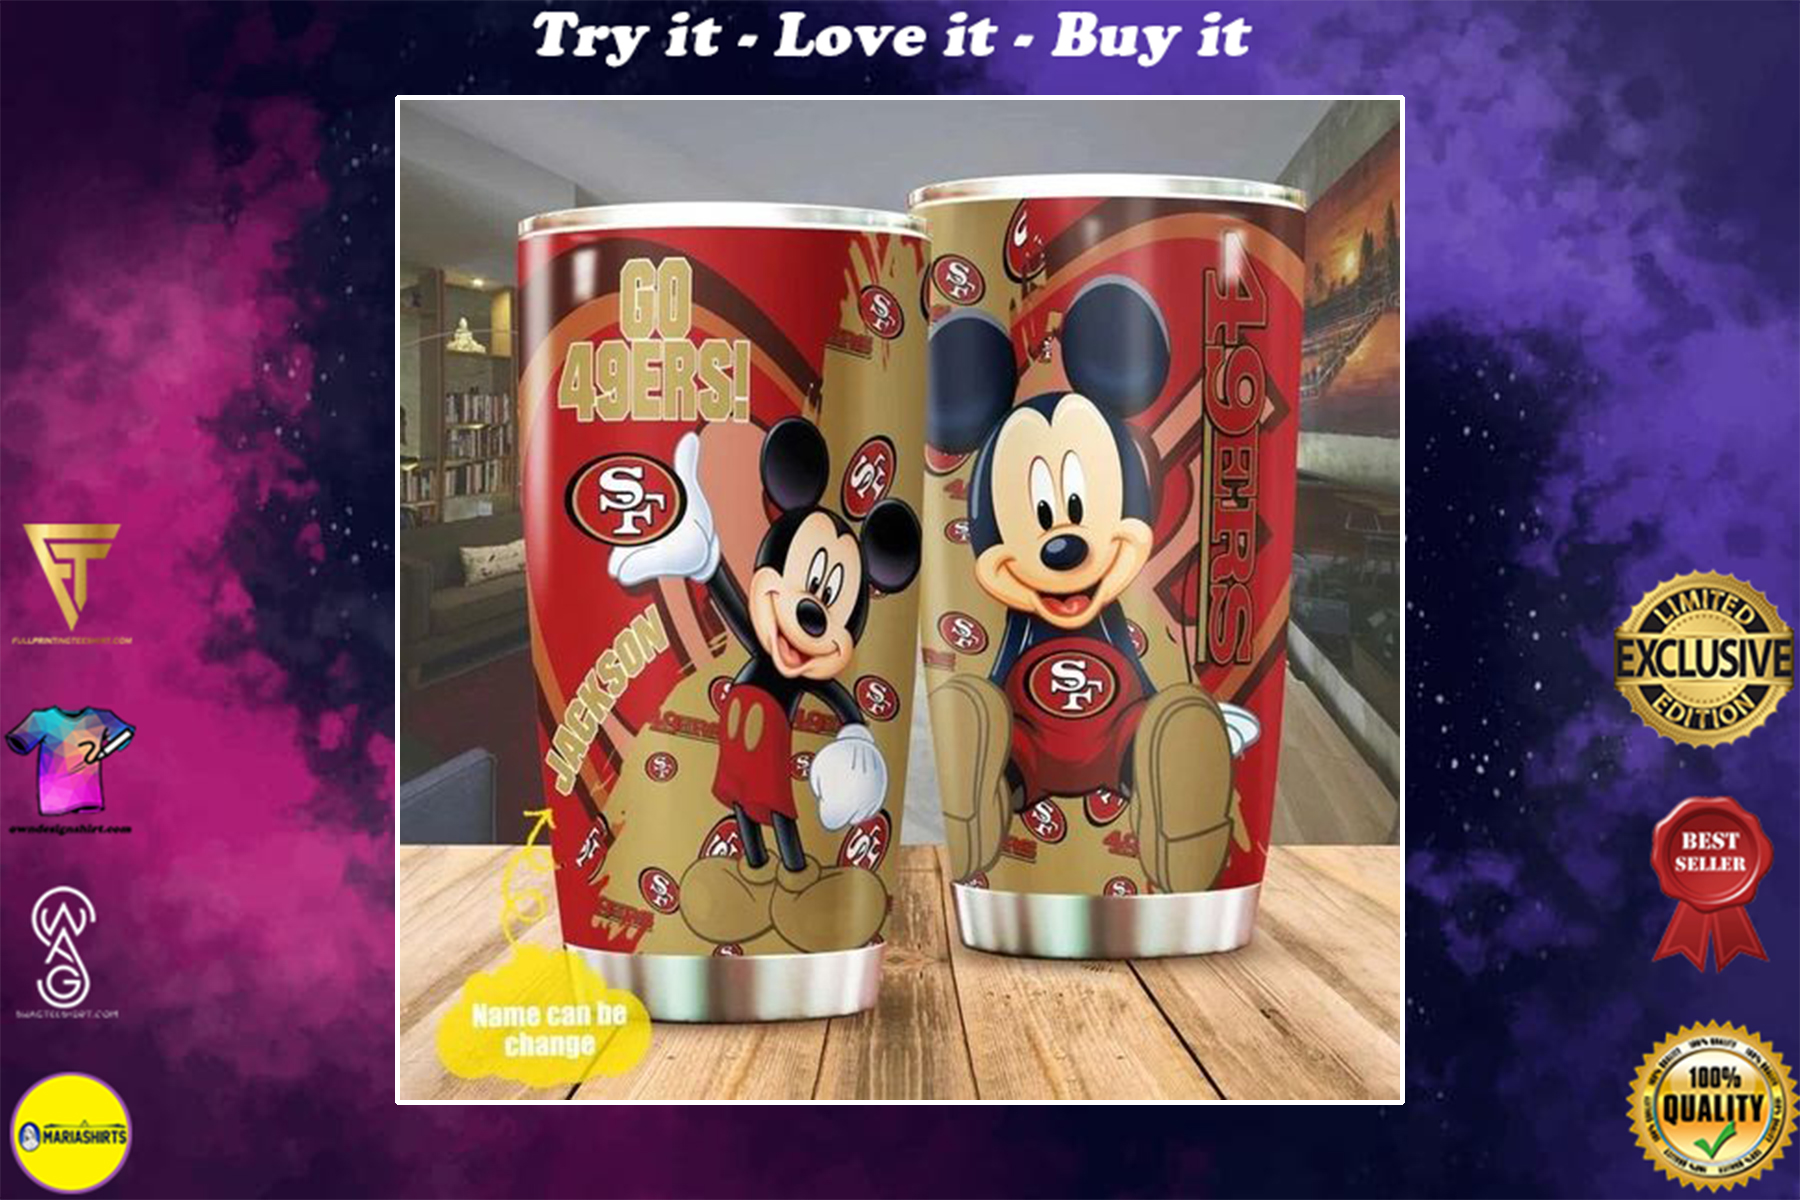 personalized name mickey mouse and san francisco 49ers tumbler